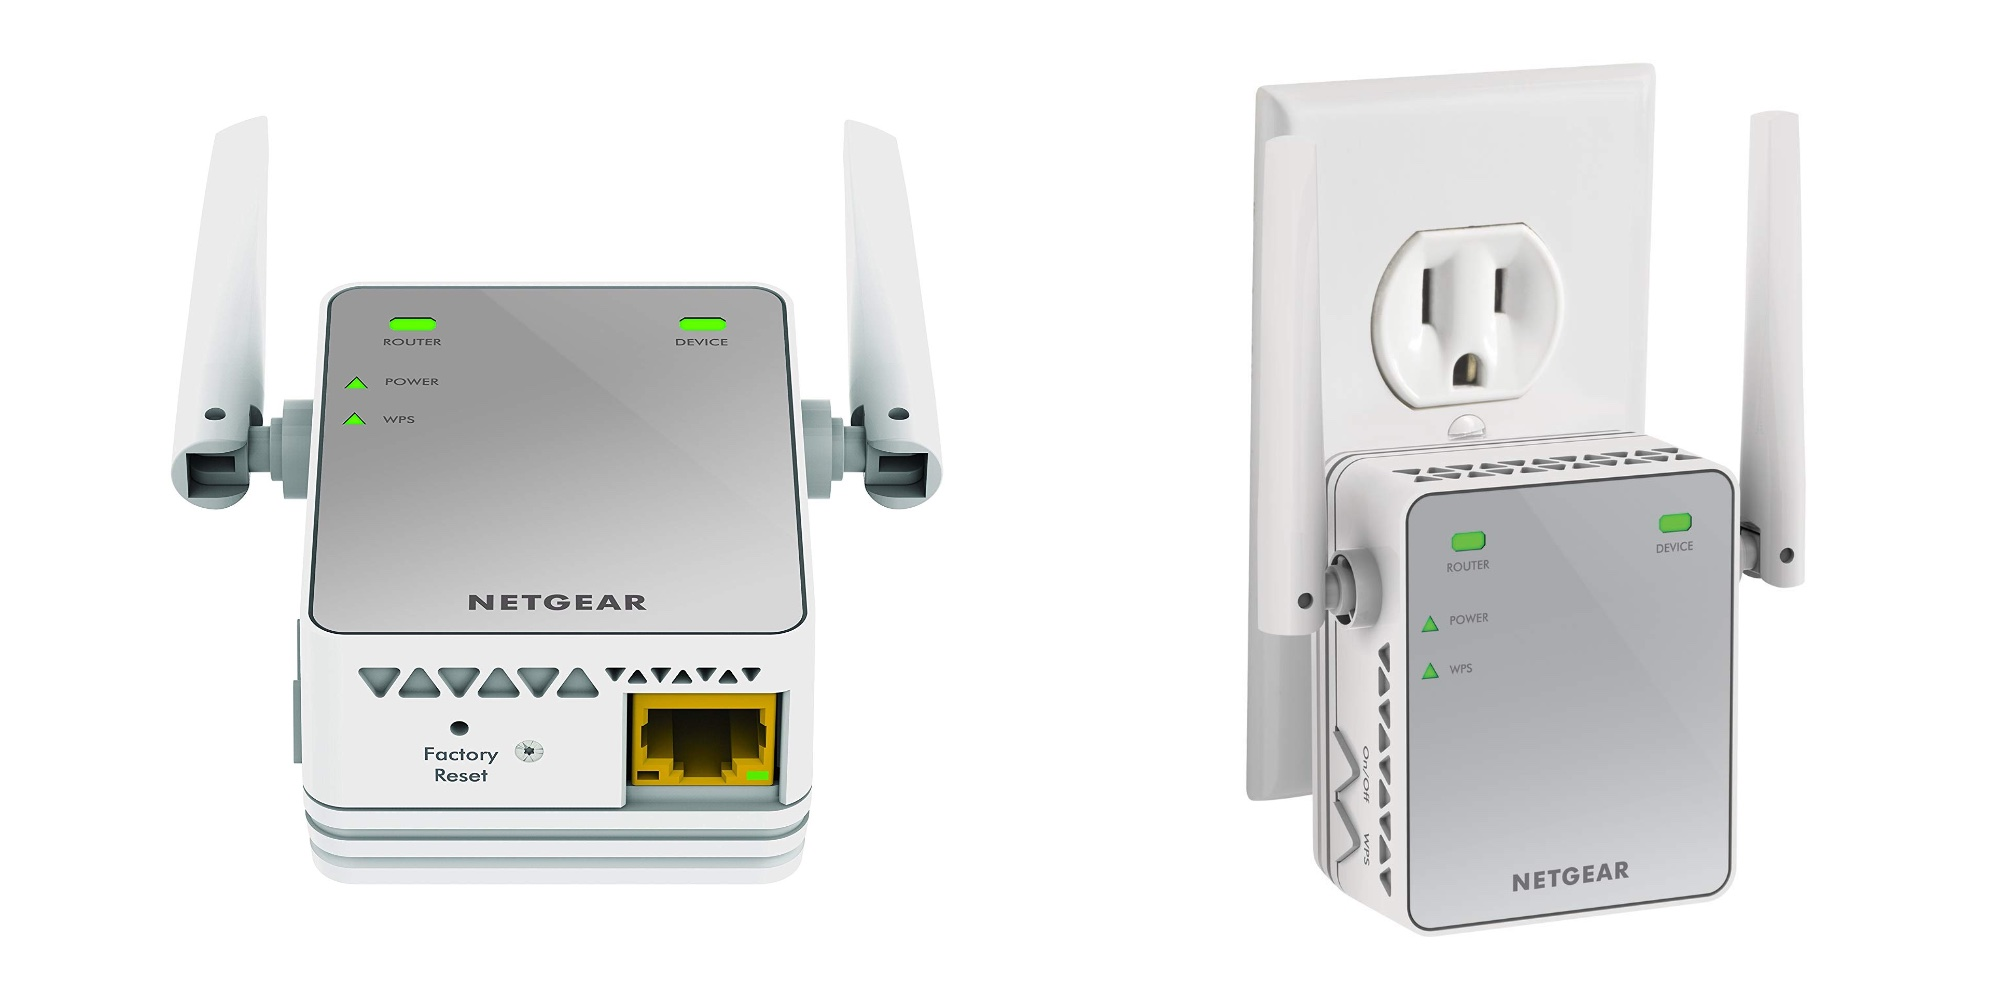 Give your Wi-Fi a boost with NETGEAR's 802.11ac Range Extender at $25 (Reg. $35)